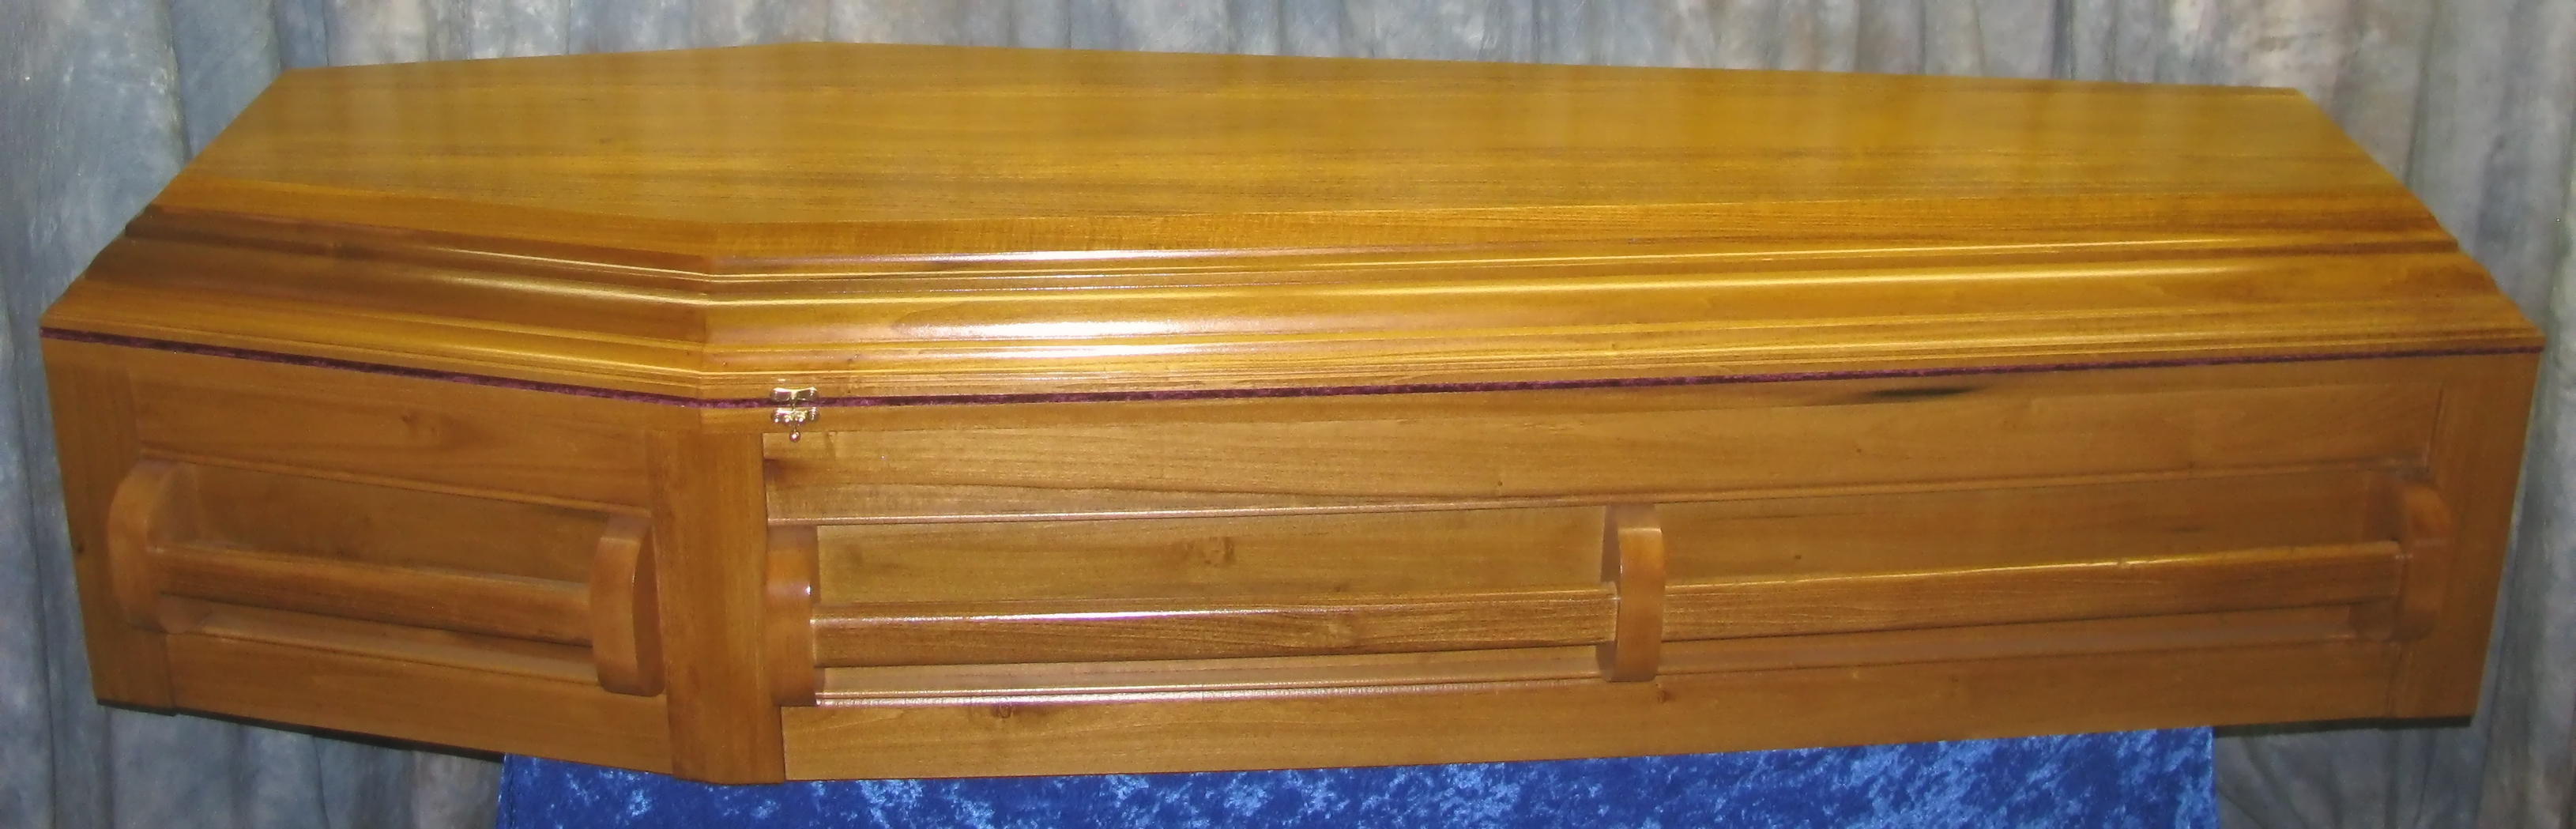 Wood Funeral Caskets & Coffins for Sale - $499 & Up - Wide Selection